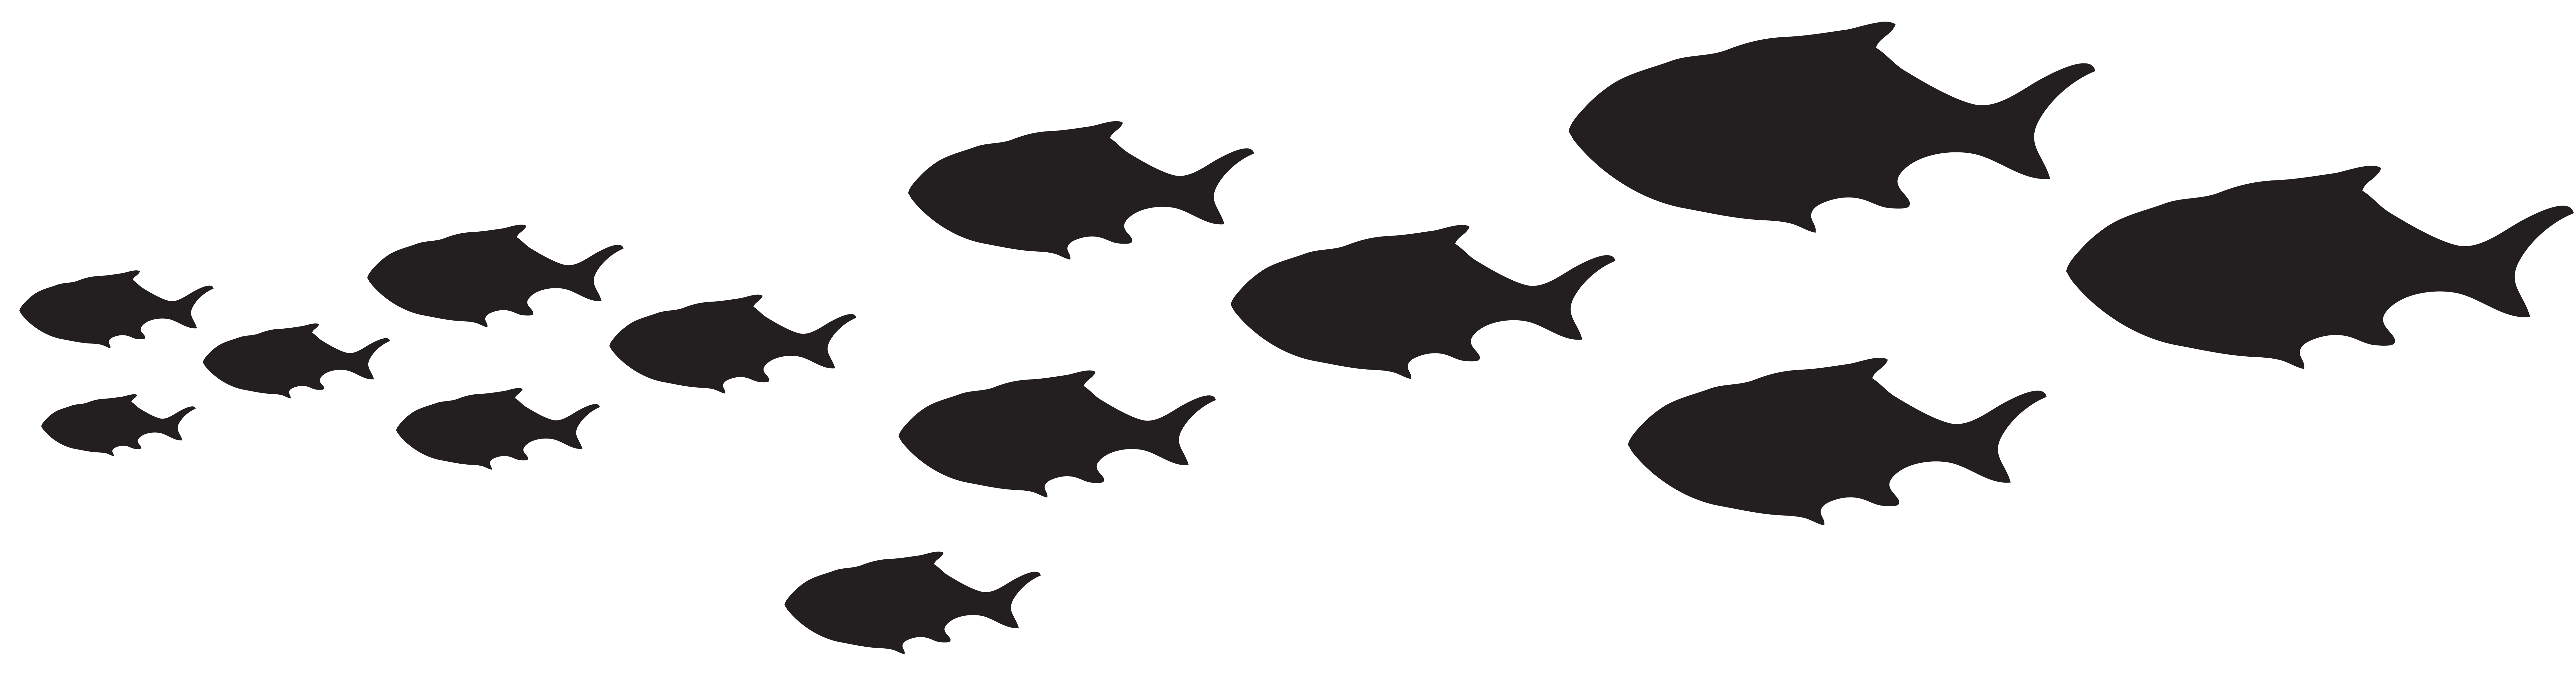 Fisherman silhouette png. Fish passage clip art